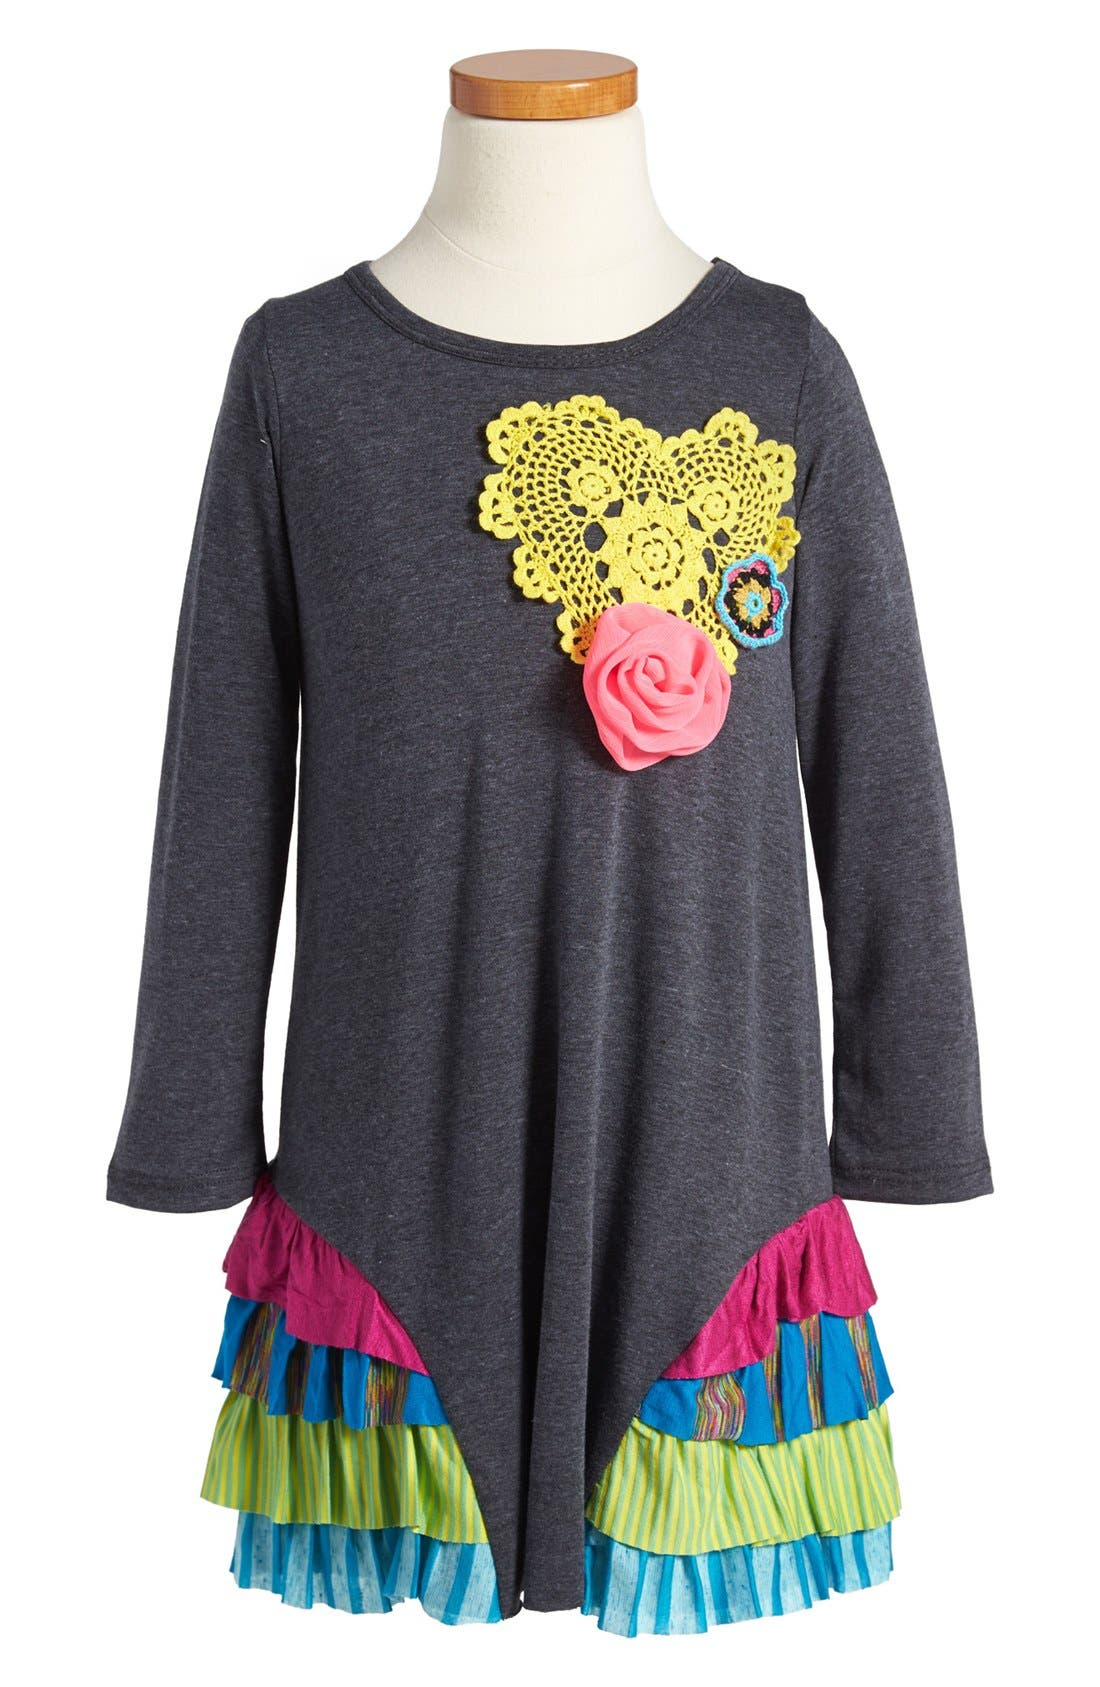 Main Image - Twirls & Twigs Knit Ruffle Dress (Little Girls & Big Girls)